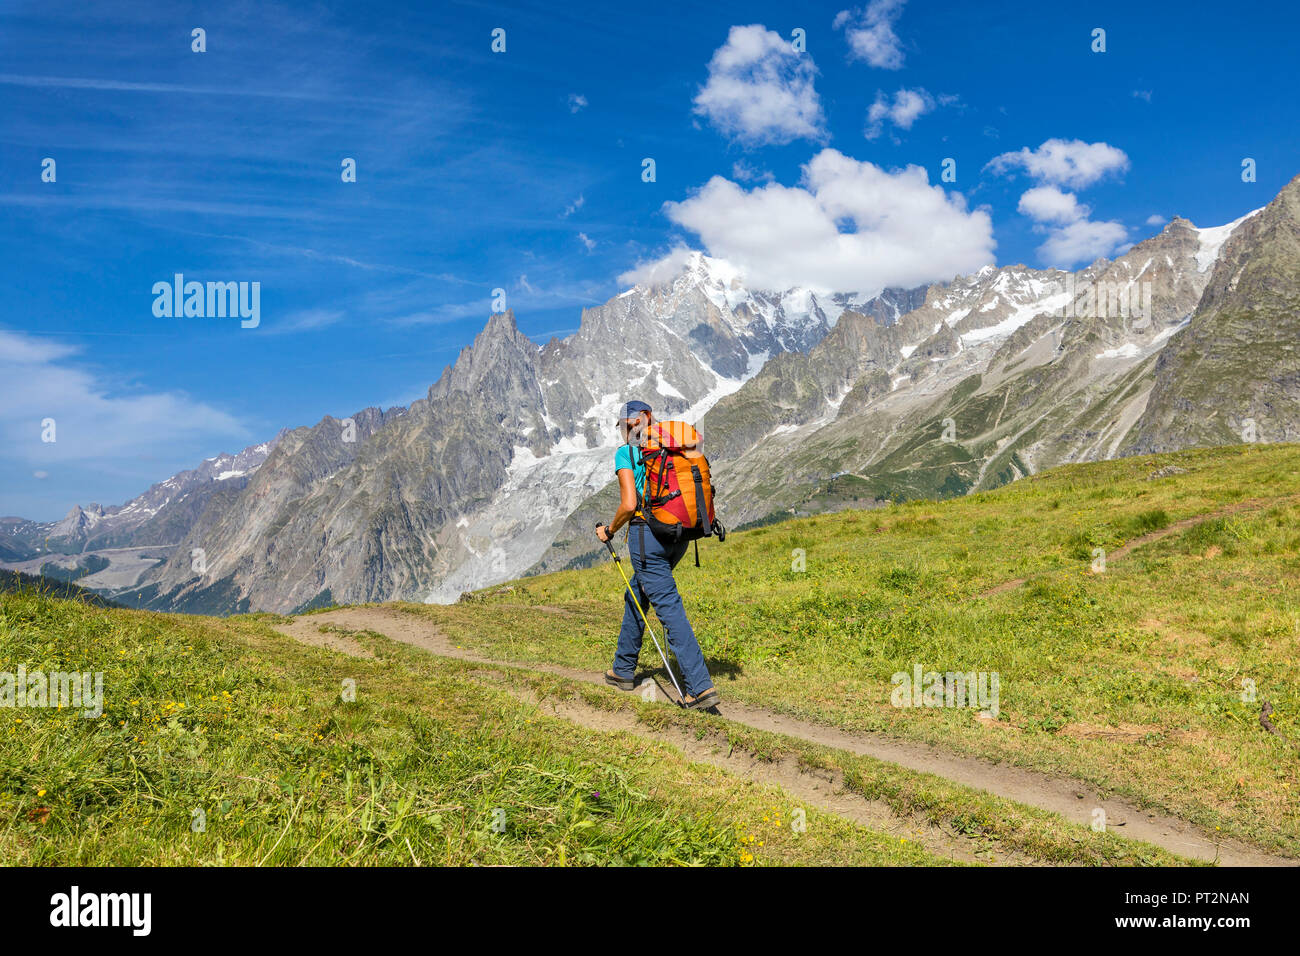 A trekker is walking in front of the Mont Blanc during the Mont Blanc hiking tours (Ferret Valley, Courmayeur, Aosta province, Aosta Valley, Italy, Europe) Stock Photo